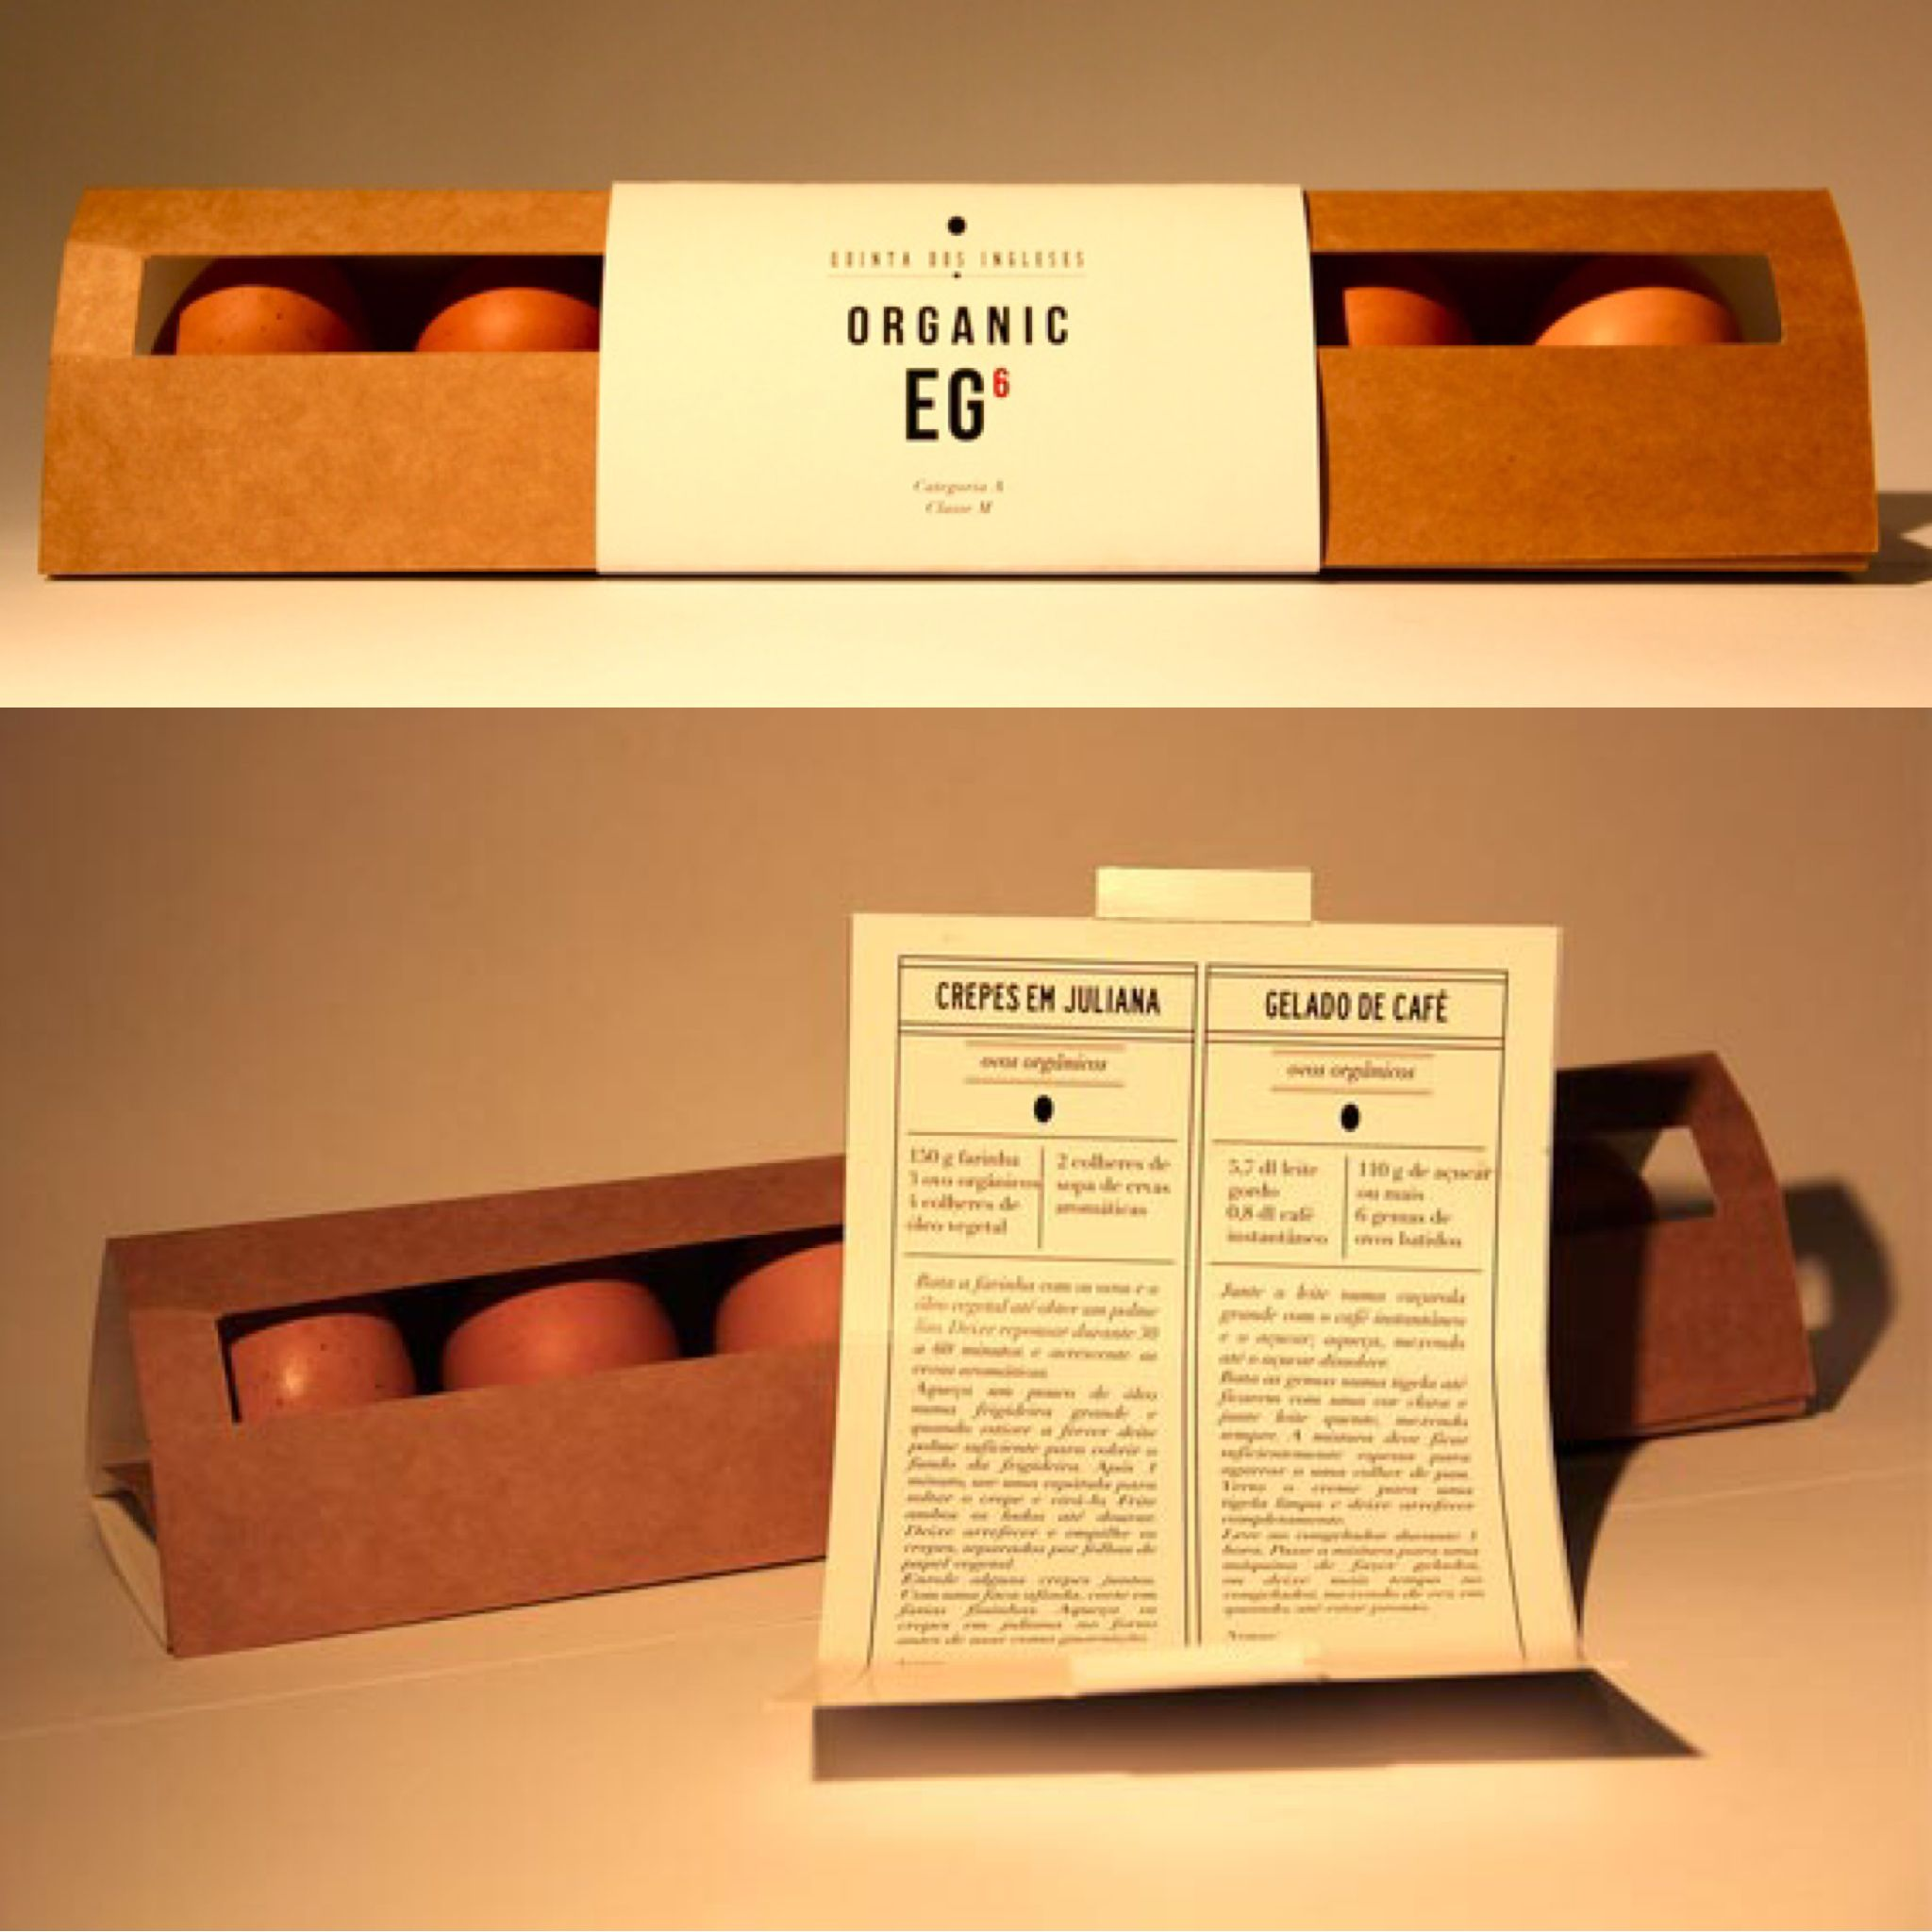 40 Brilliant Under The Stairs Employment Ideas: 40 Brilliant Egg Packaging Design Ideas